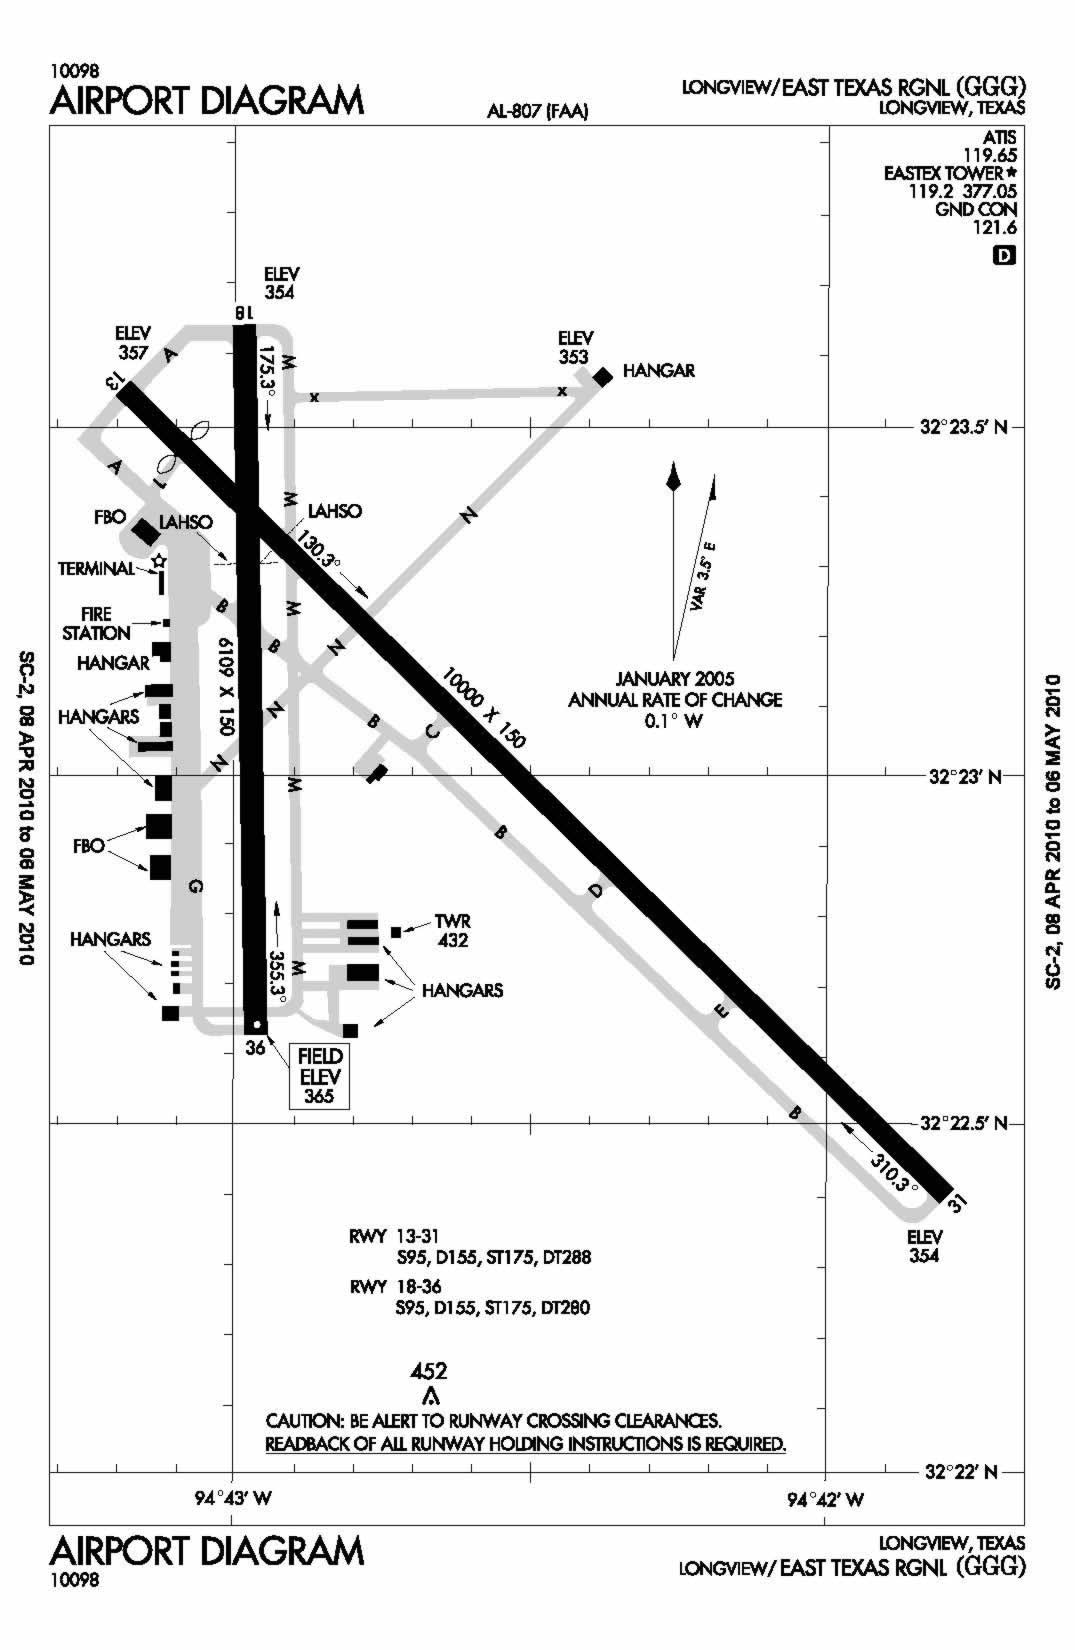 East Texas Regional Airport diagram